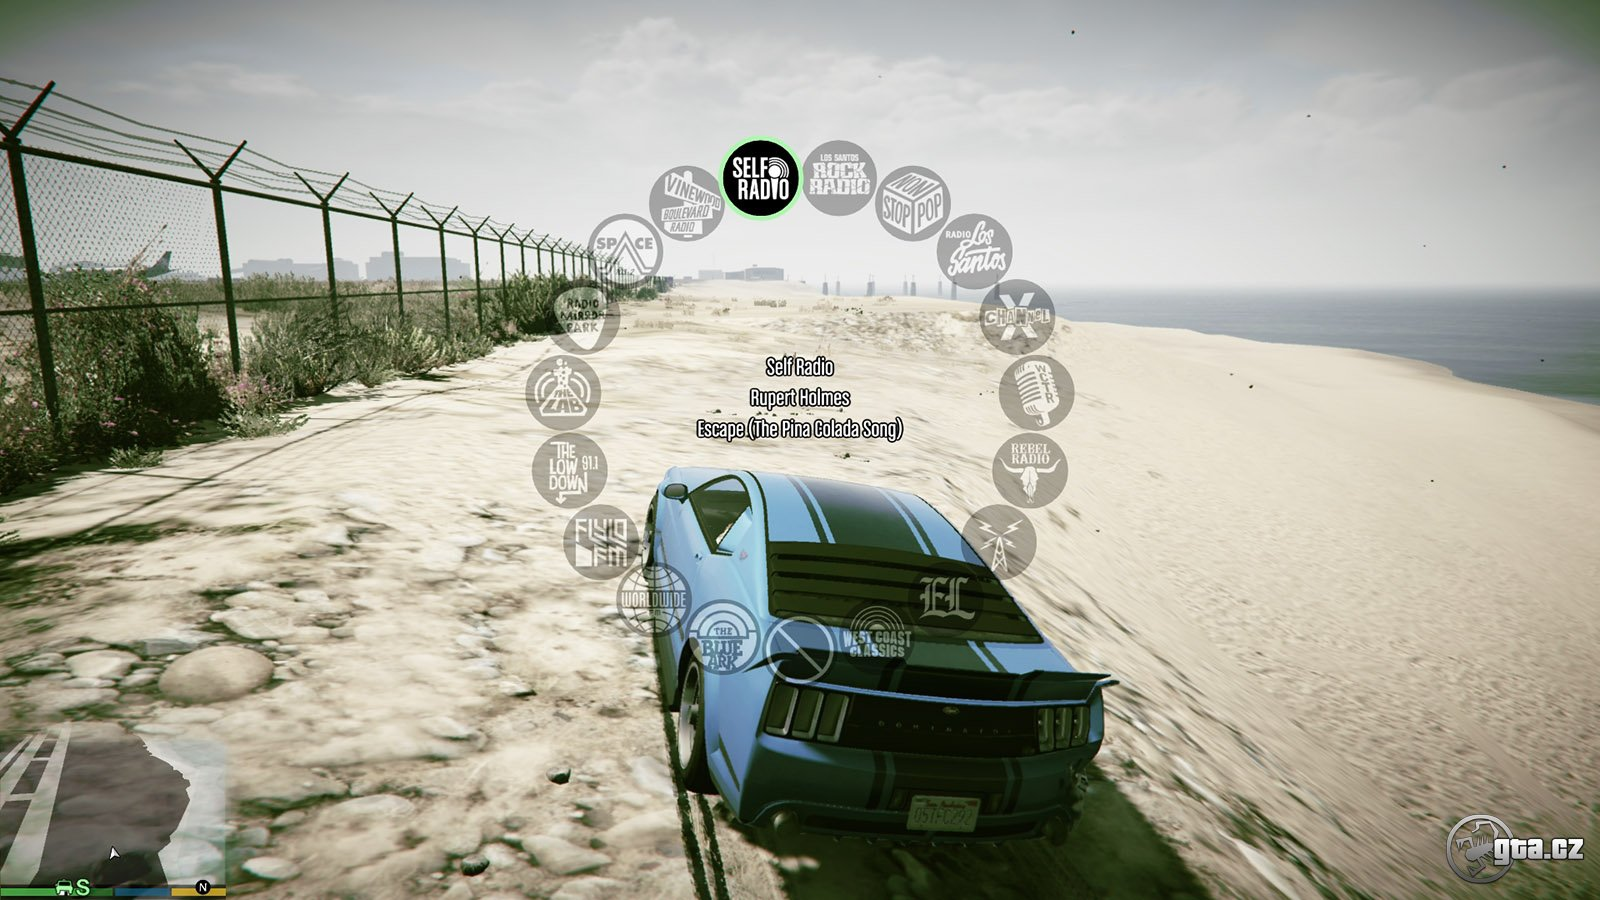 Own Music In The Gta V Gta V Grand Theft Auto 5 On Gtacz